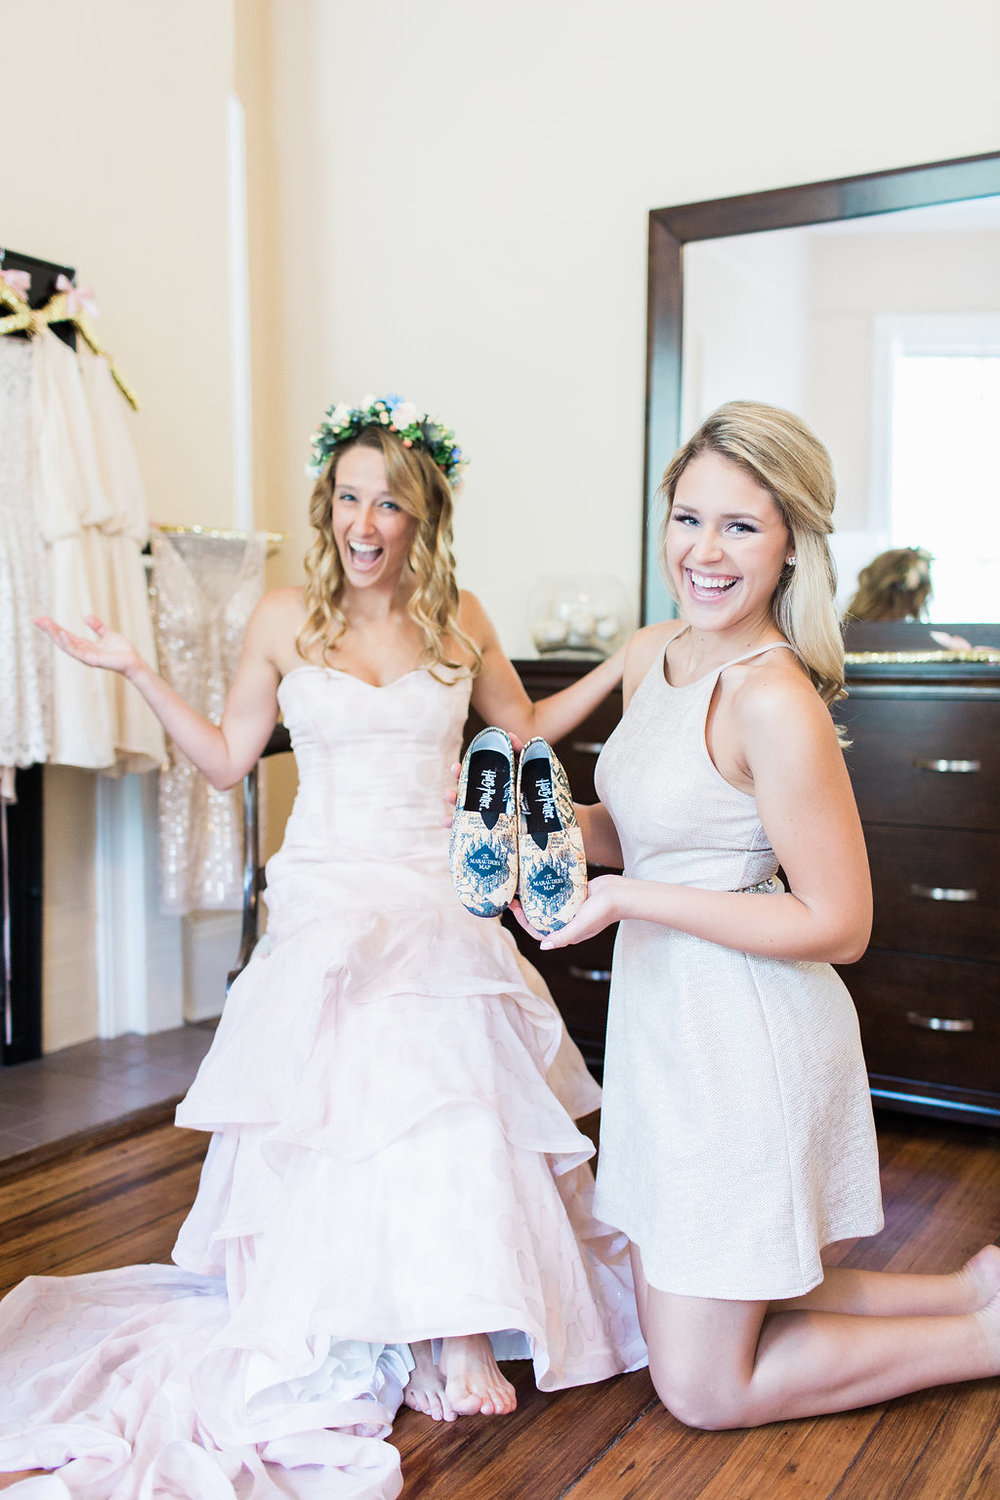 eve-pat-apt-b-photography-Jacklynn-bridal-blush-wedding-dress-polka-dot-wedding-dress-ivory-and-beau-bridal-boutique-savannah-wedding-harry-potter-wedding-savannah-bridal-boutique-savannah-wedding-planner-urban-poppy-florist-soho-south-cafe-wedding-9.JPG